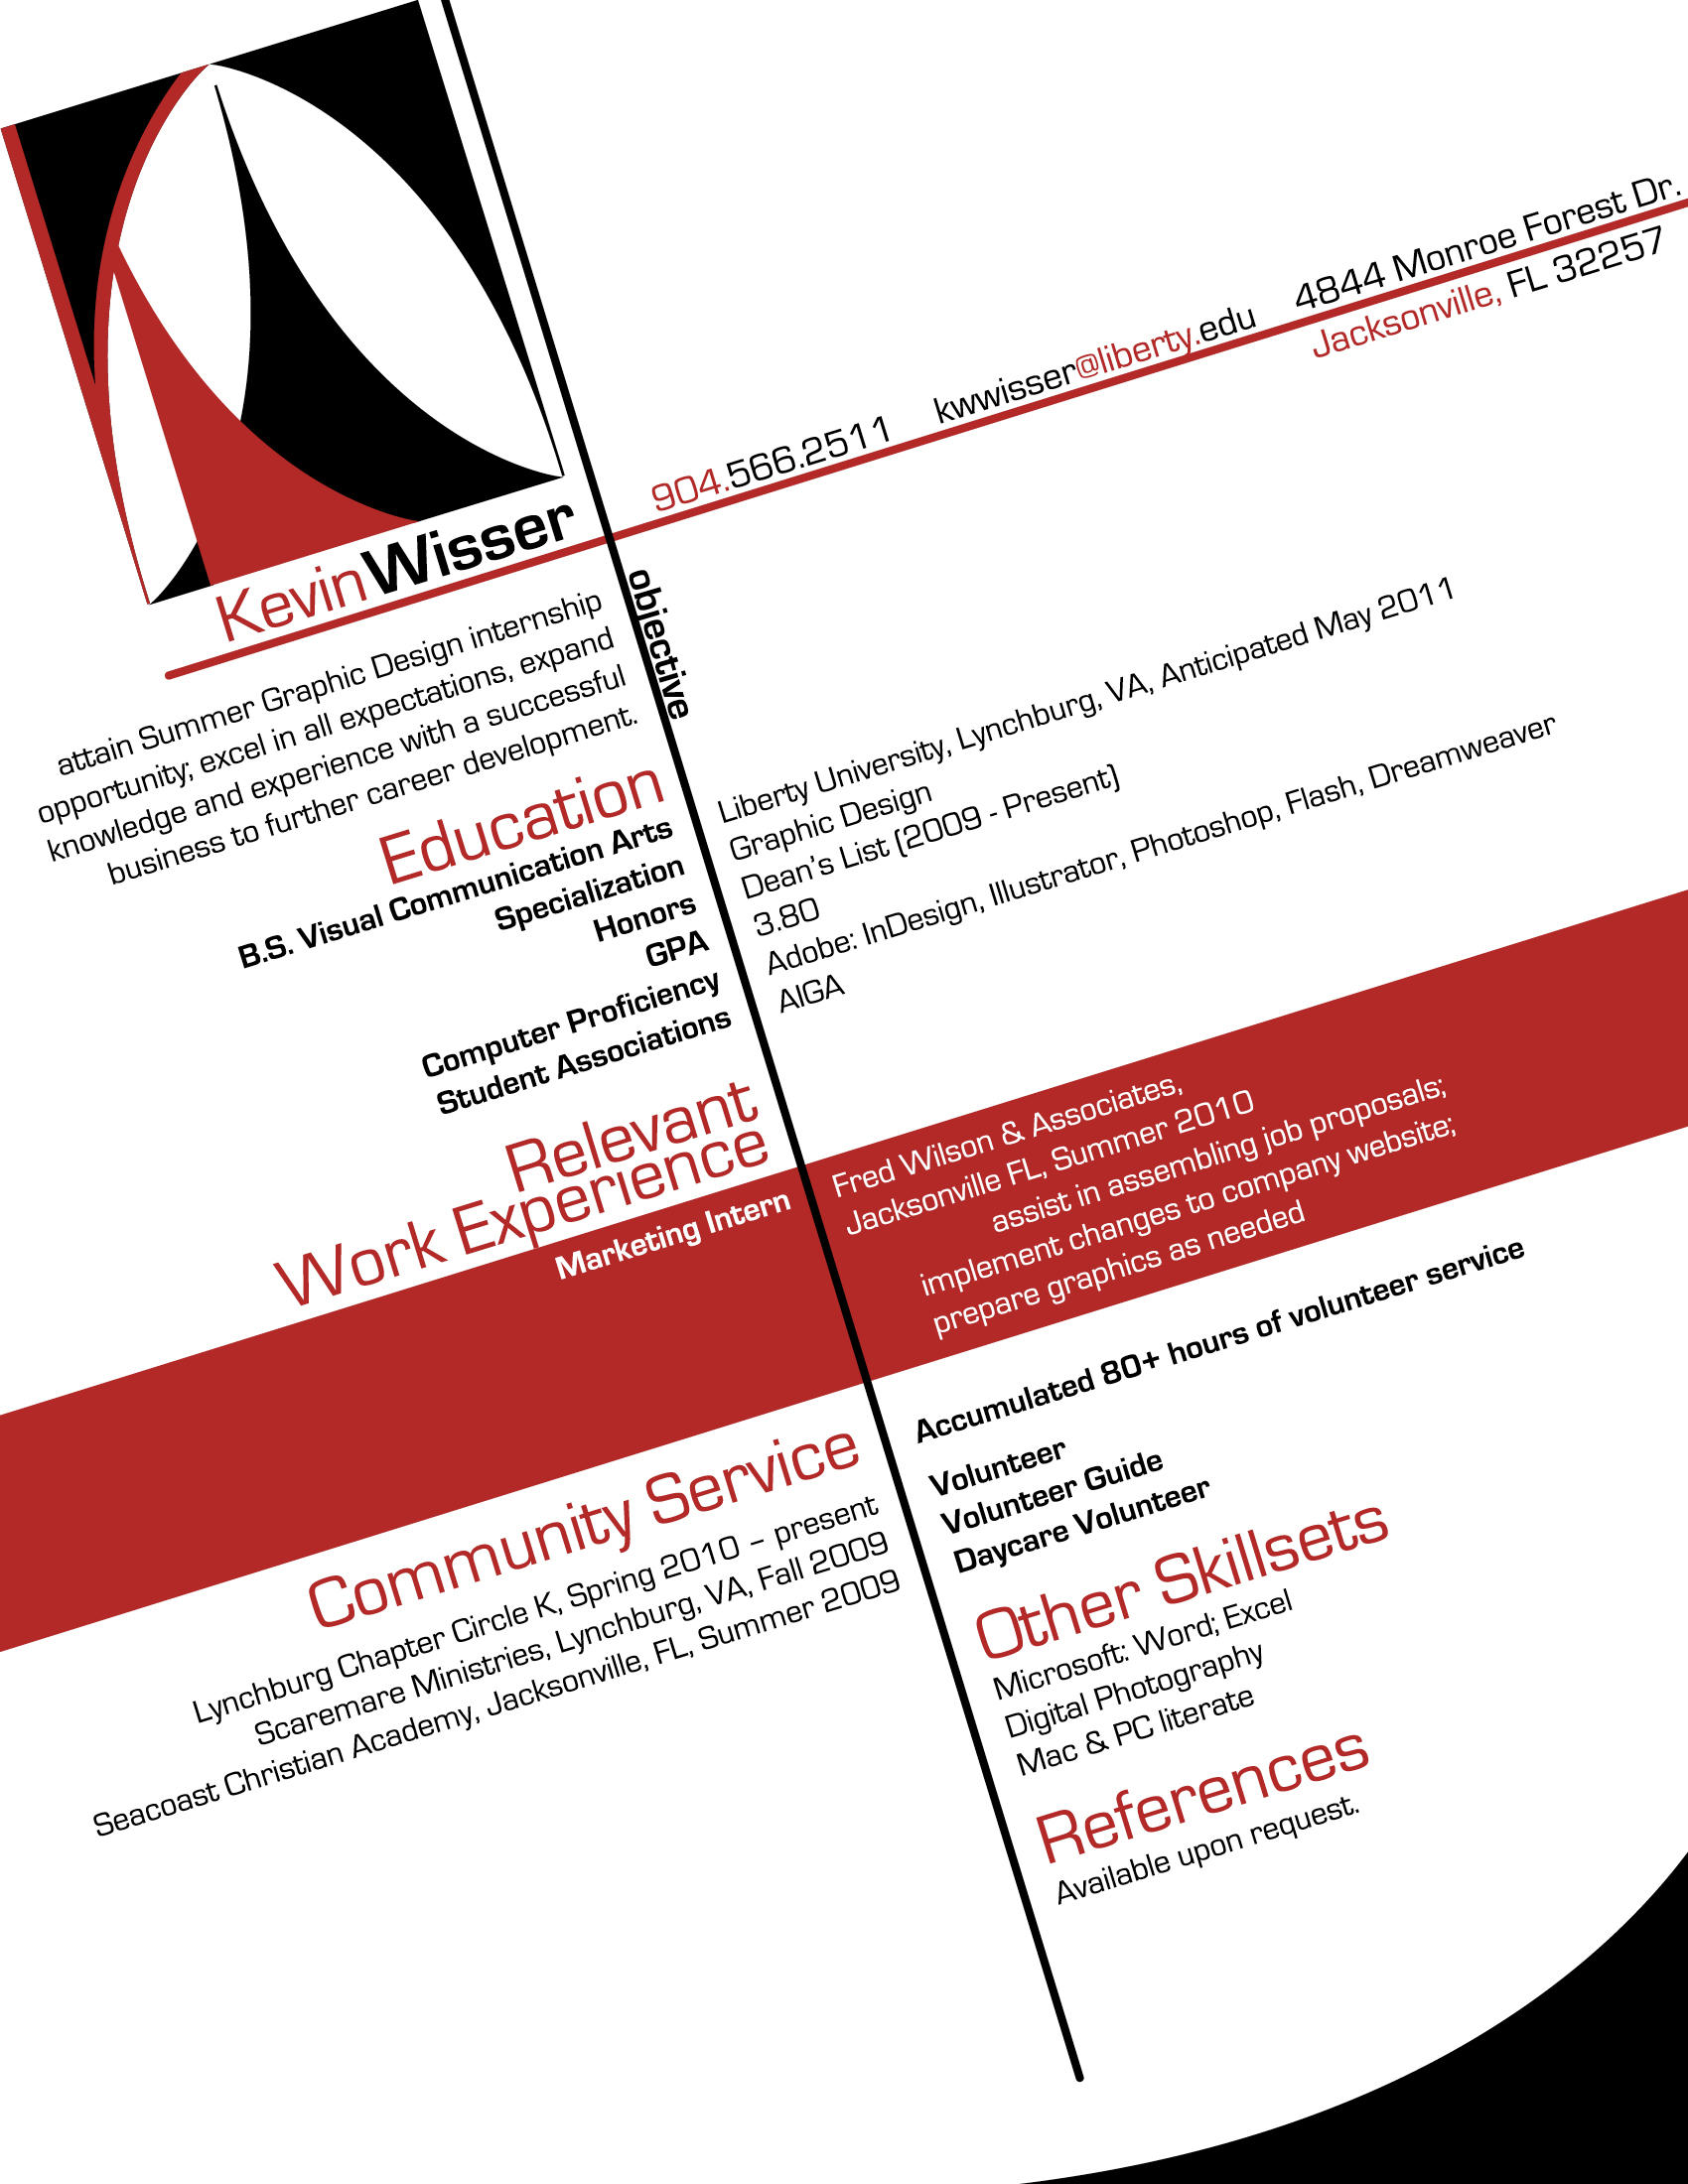 graphic design resume by blindfaeth graphic design resume by blindfaeth. Resume Example. Resume CV Cover Letter